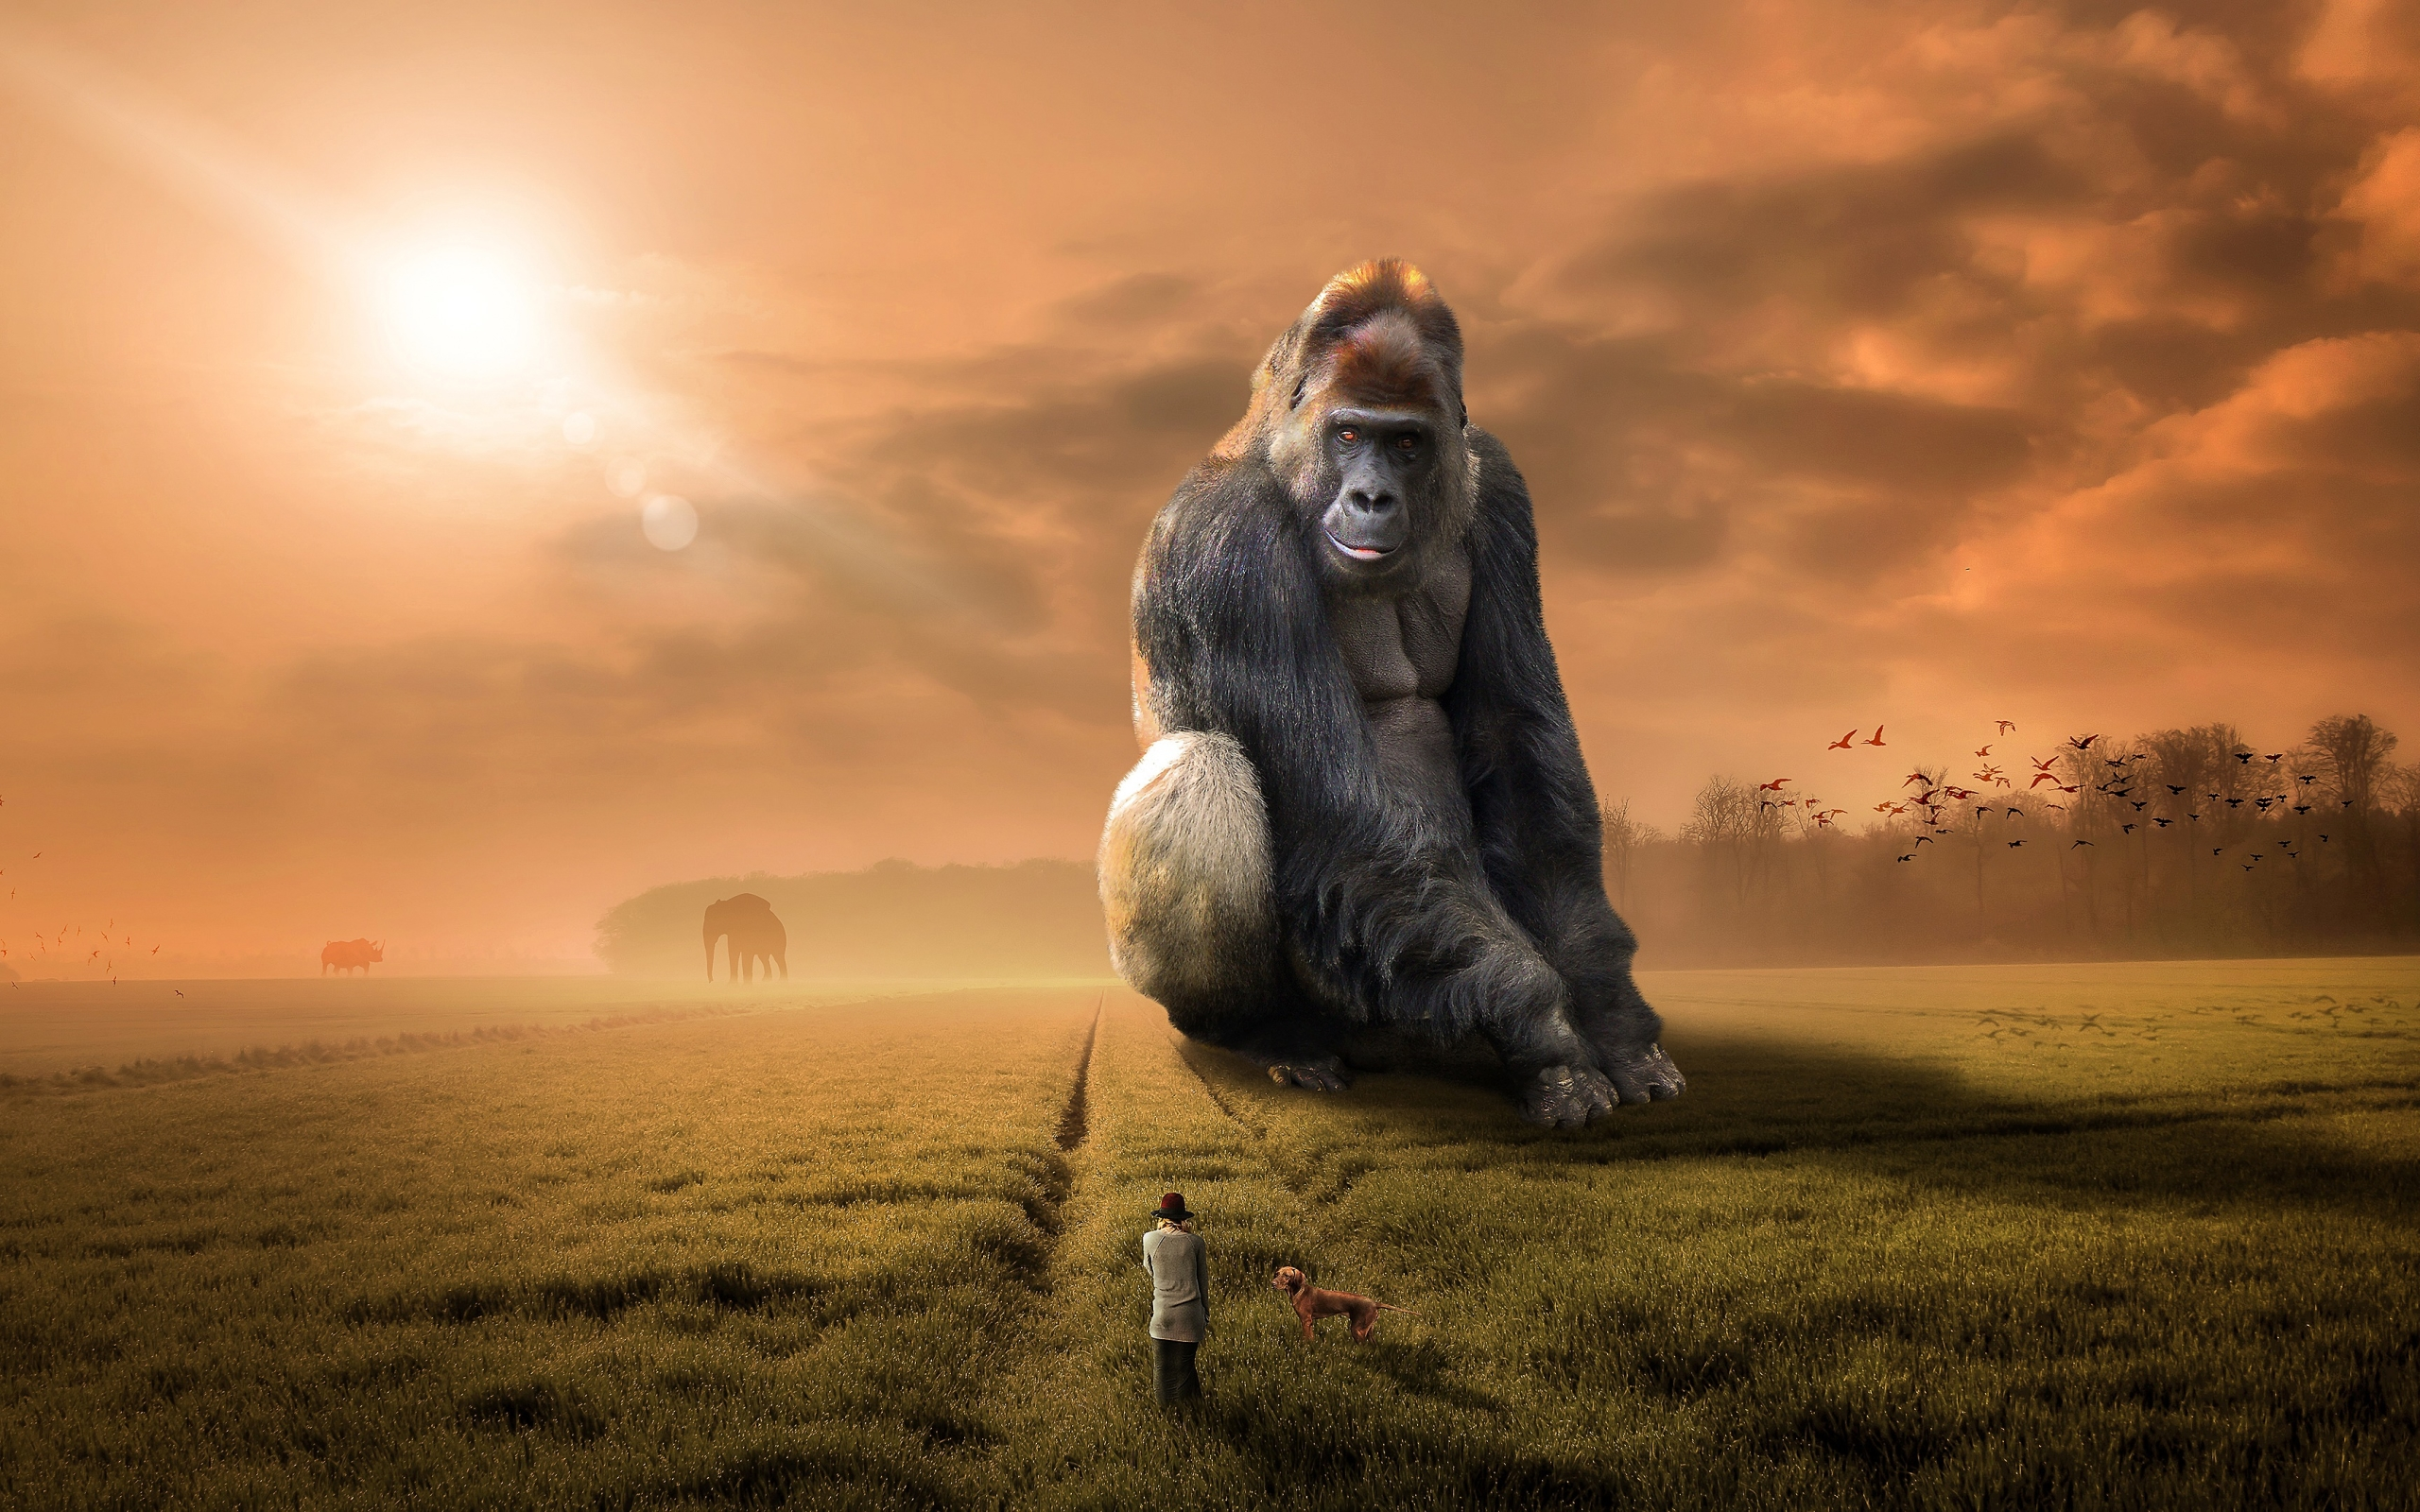 Wallpaper Of Animal Fantasy Gorilla People Background